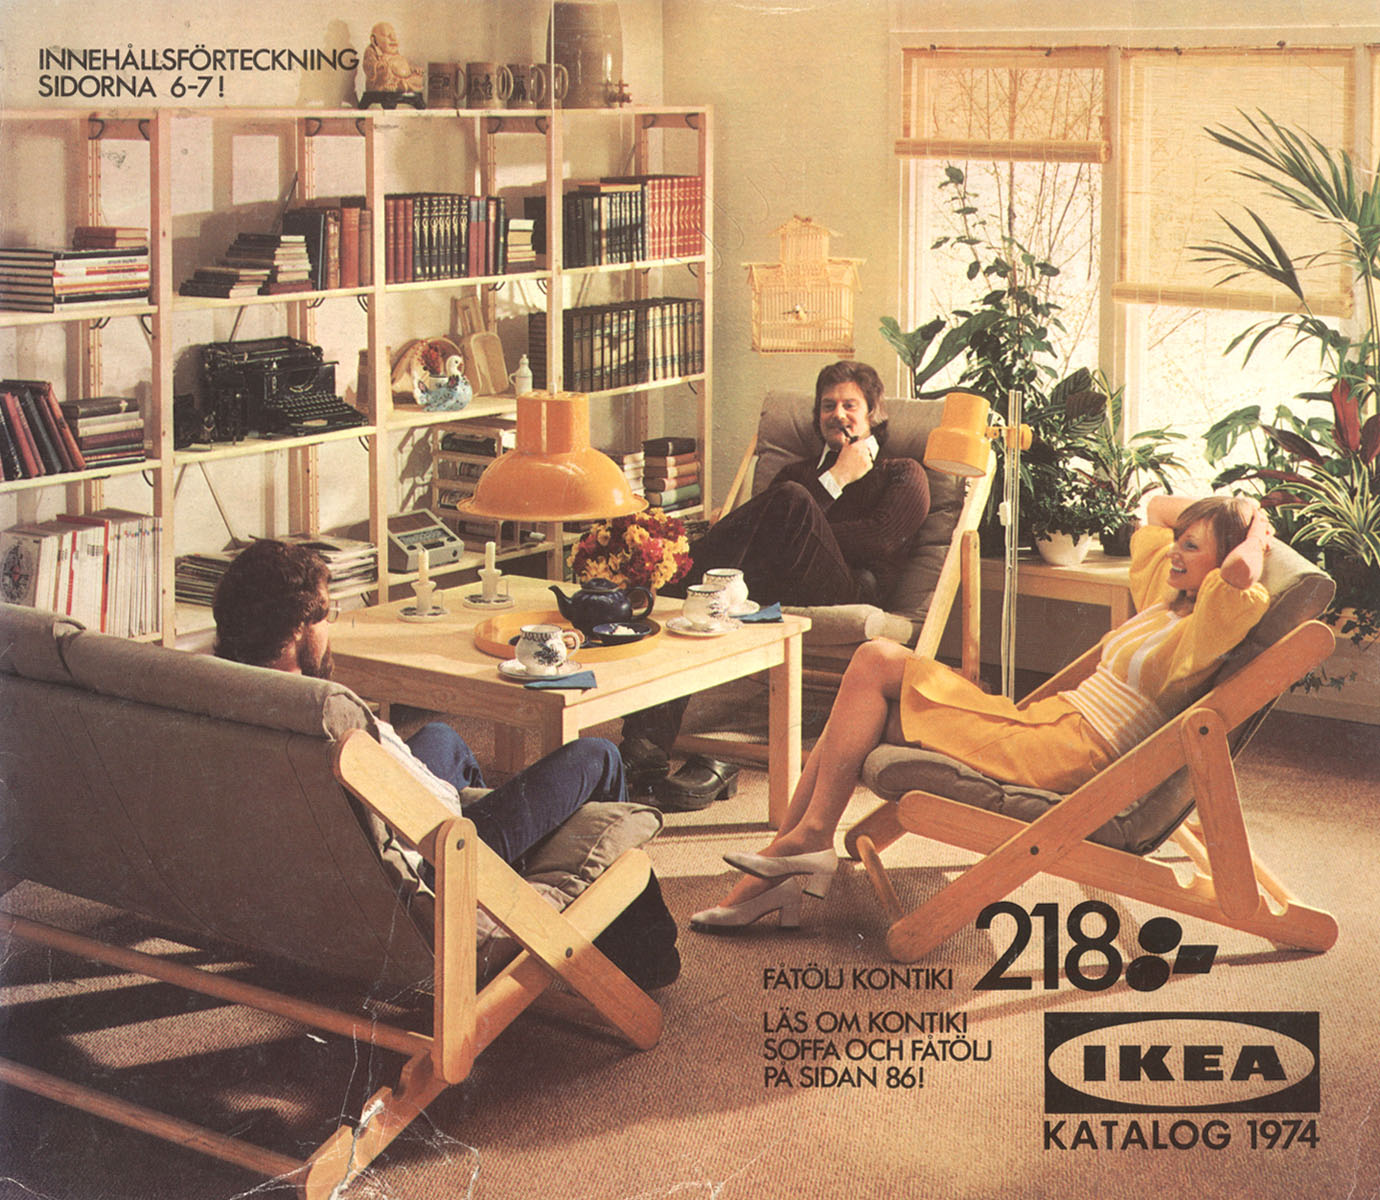 Ikea 1974 catalog interior design ideas Design house catalog